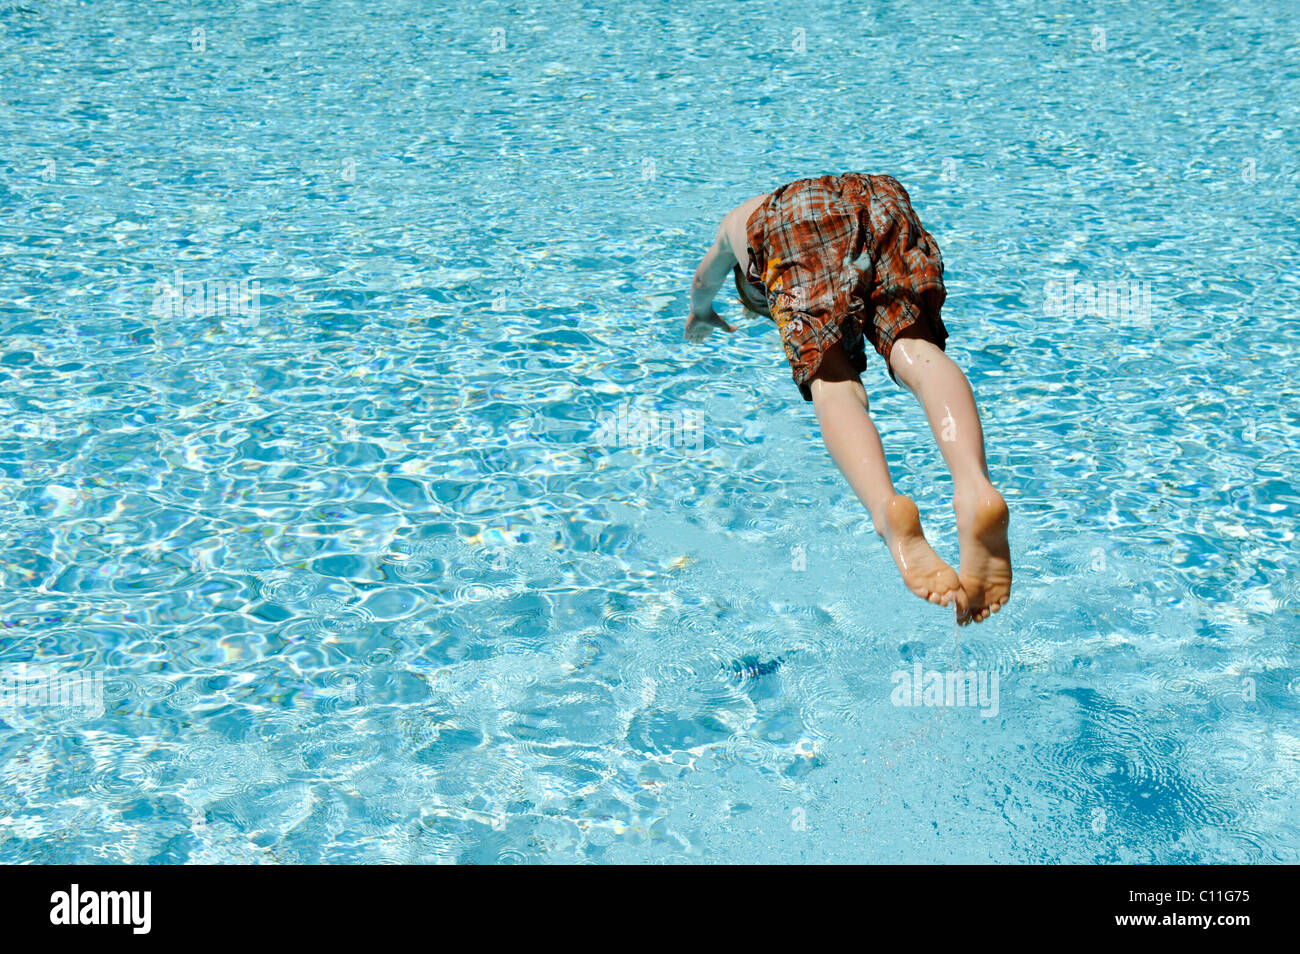 Jump into the water, swimming pool, summer heat - Stock Image